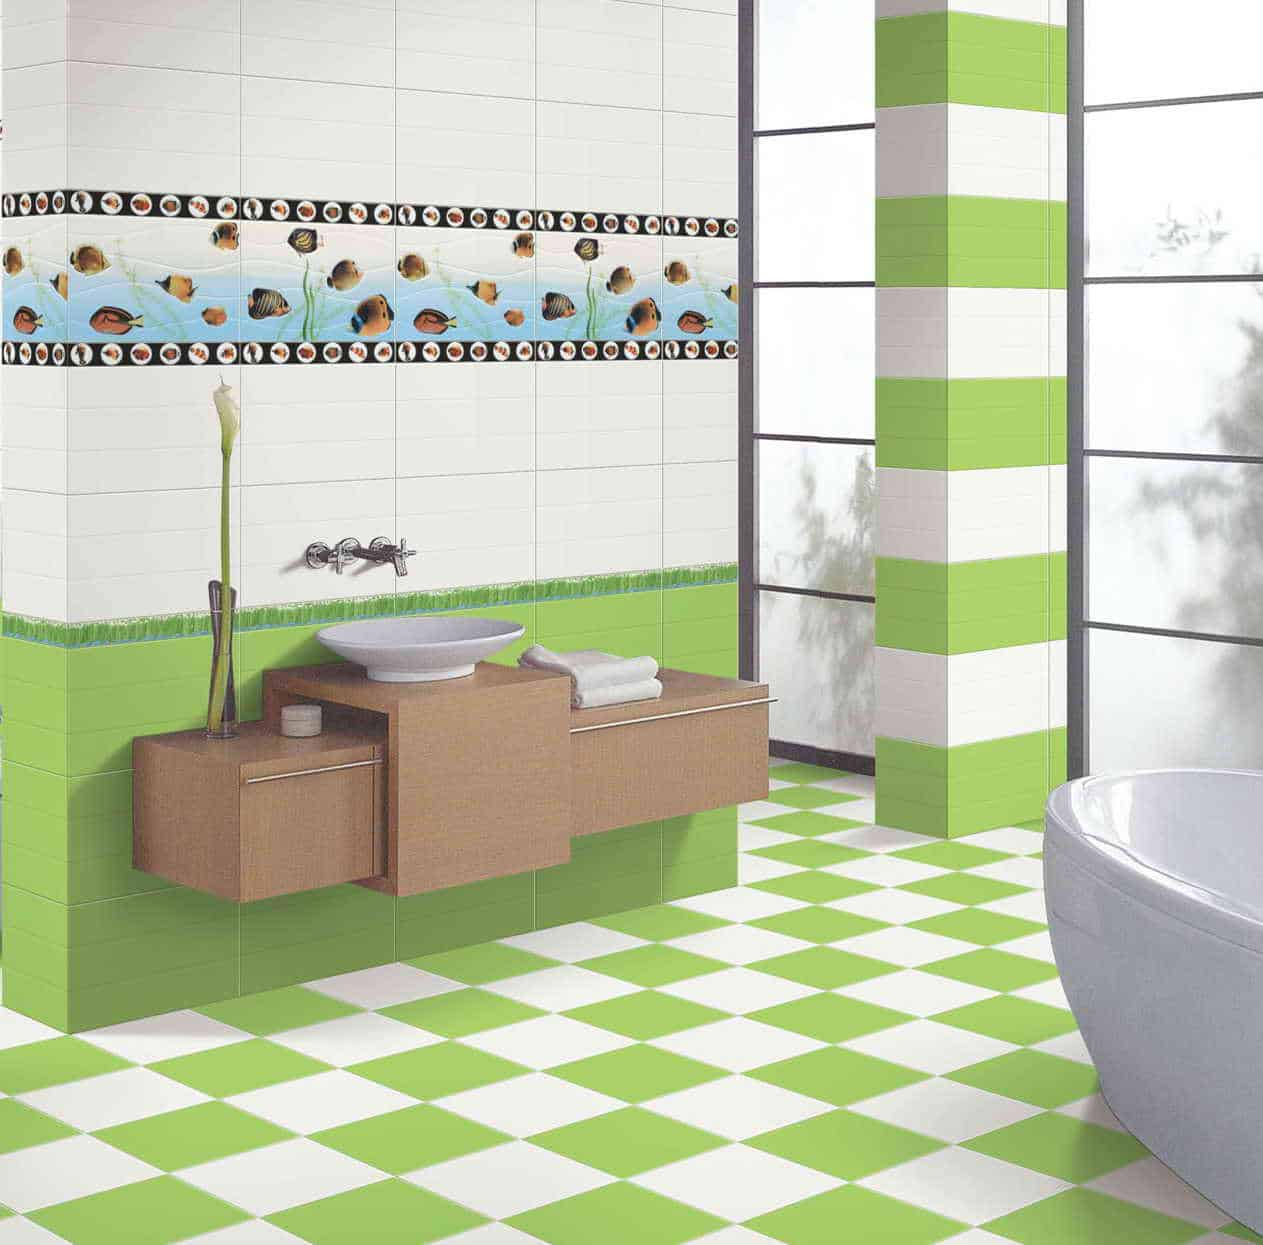 Buy Tiles Decoration-1 – Contemporary Tile Design Ideas From Around ...